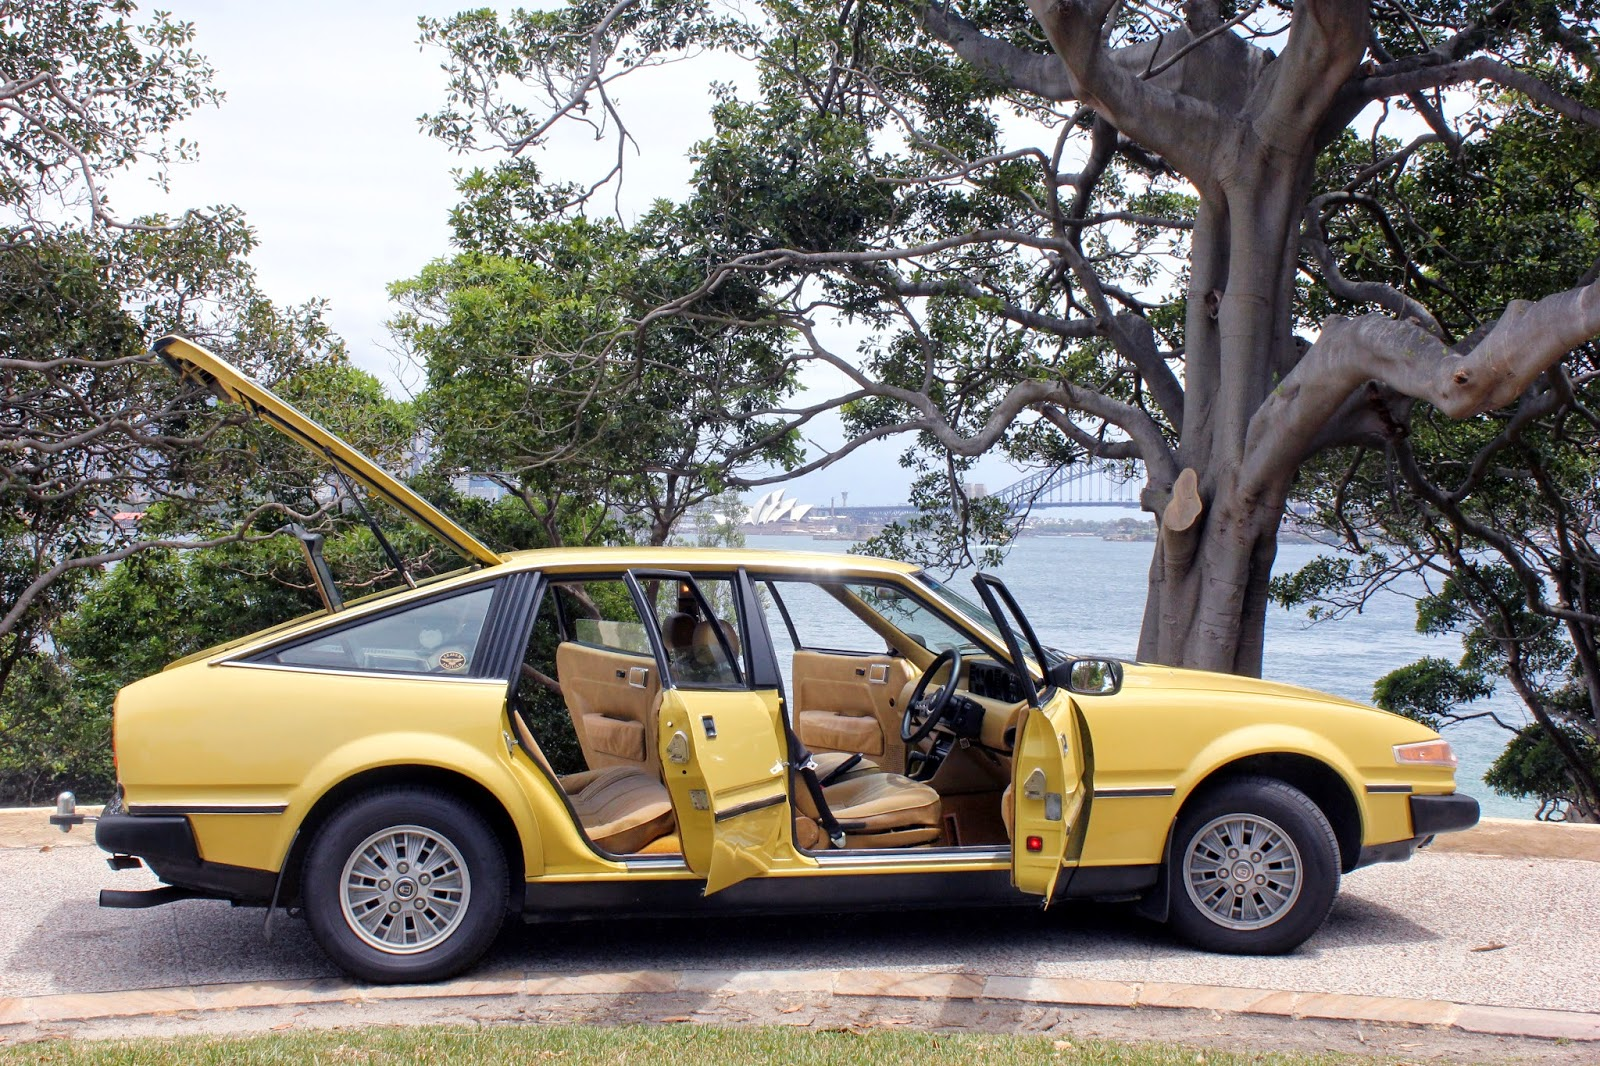 Aussie Old Parked Cars: Rover 3500 SD1 - European Car of the Year 1977